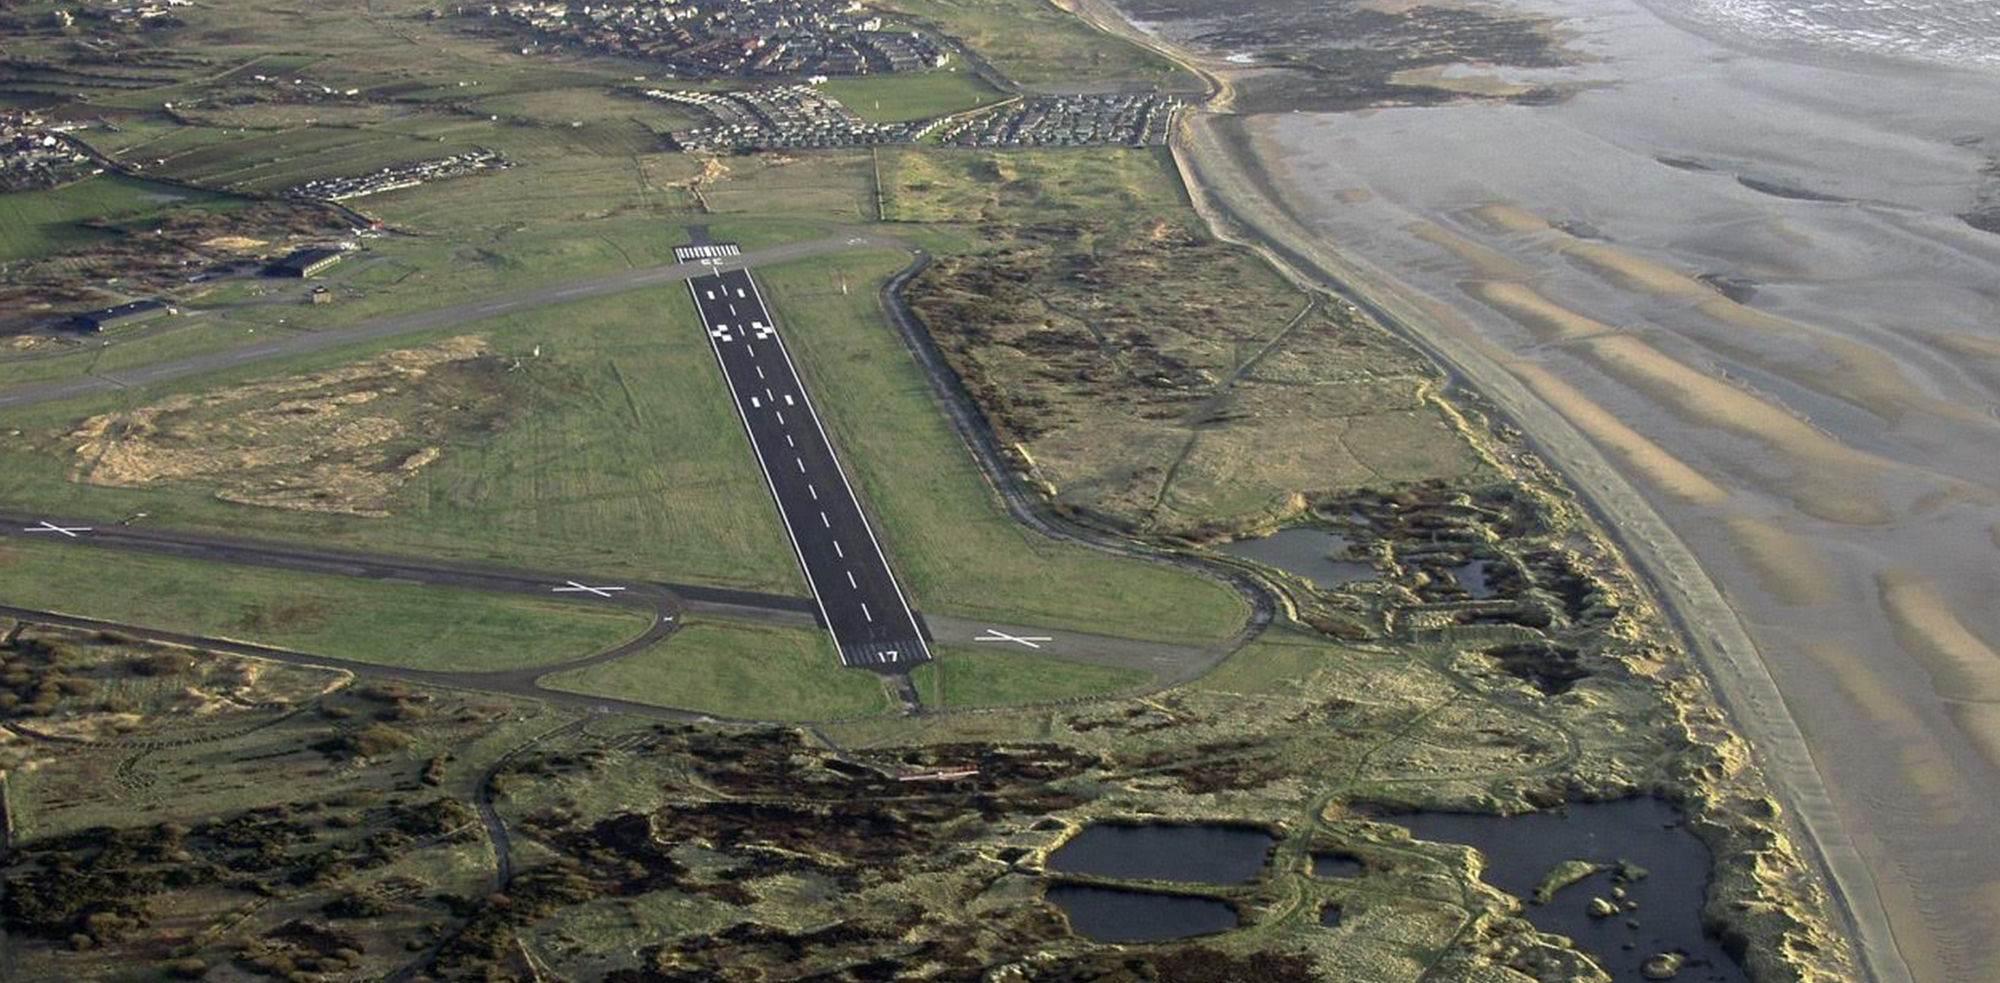 https://i1.wp.com/www.art-gene.co.uk/wp-content/uploads/2016/10/HEADER-FORT-WALNEY-Lawrence-Hill-2005-Aerial-Photos-of-the-North-Walney-National-Nature-Reserve.jpg?fit=2000%2C983